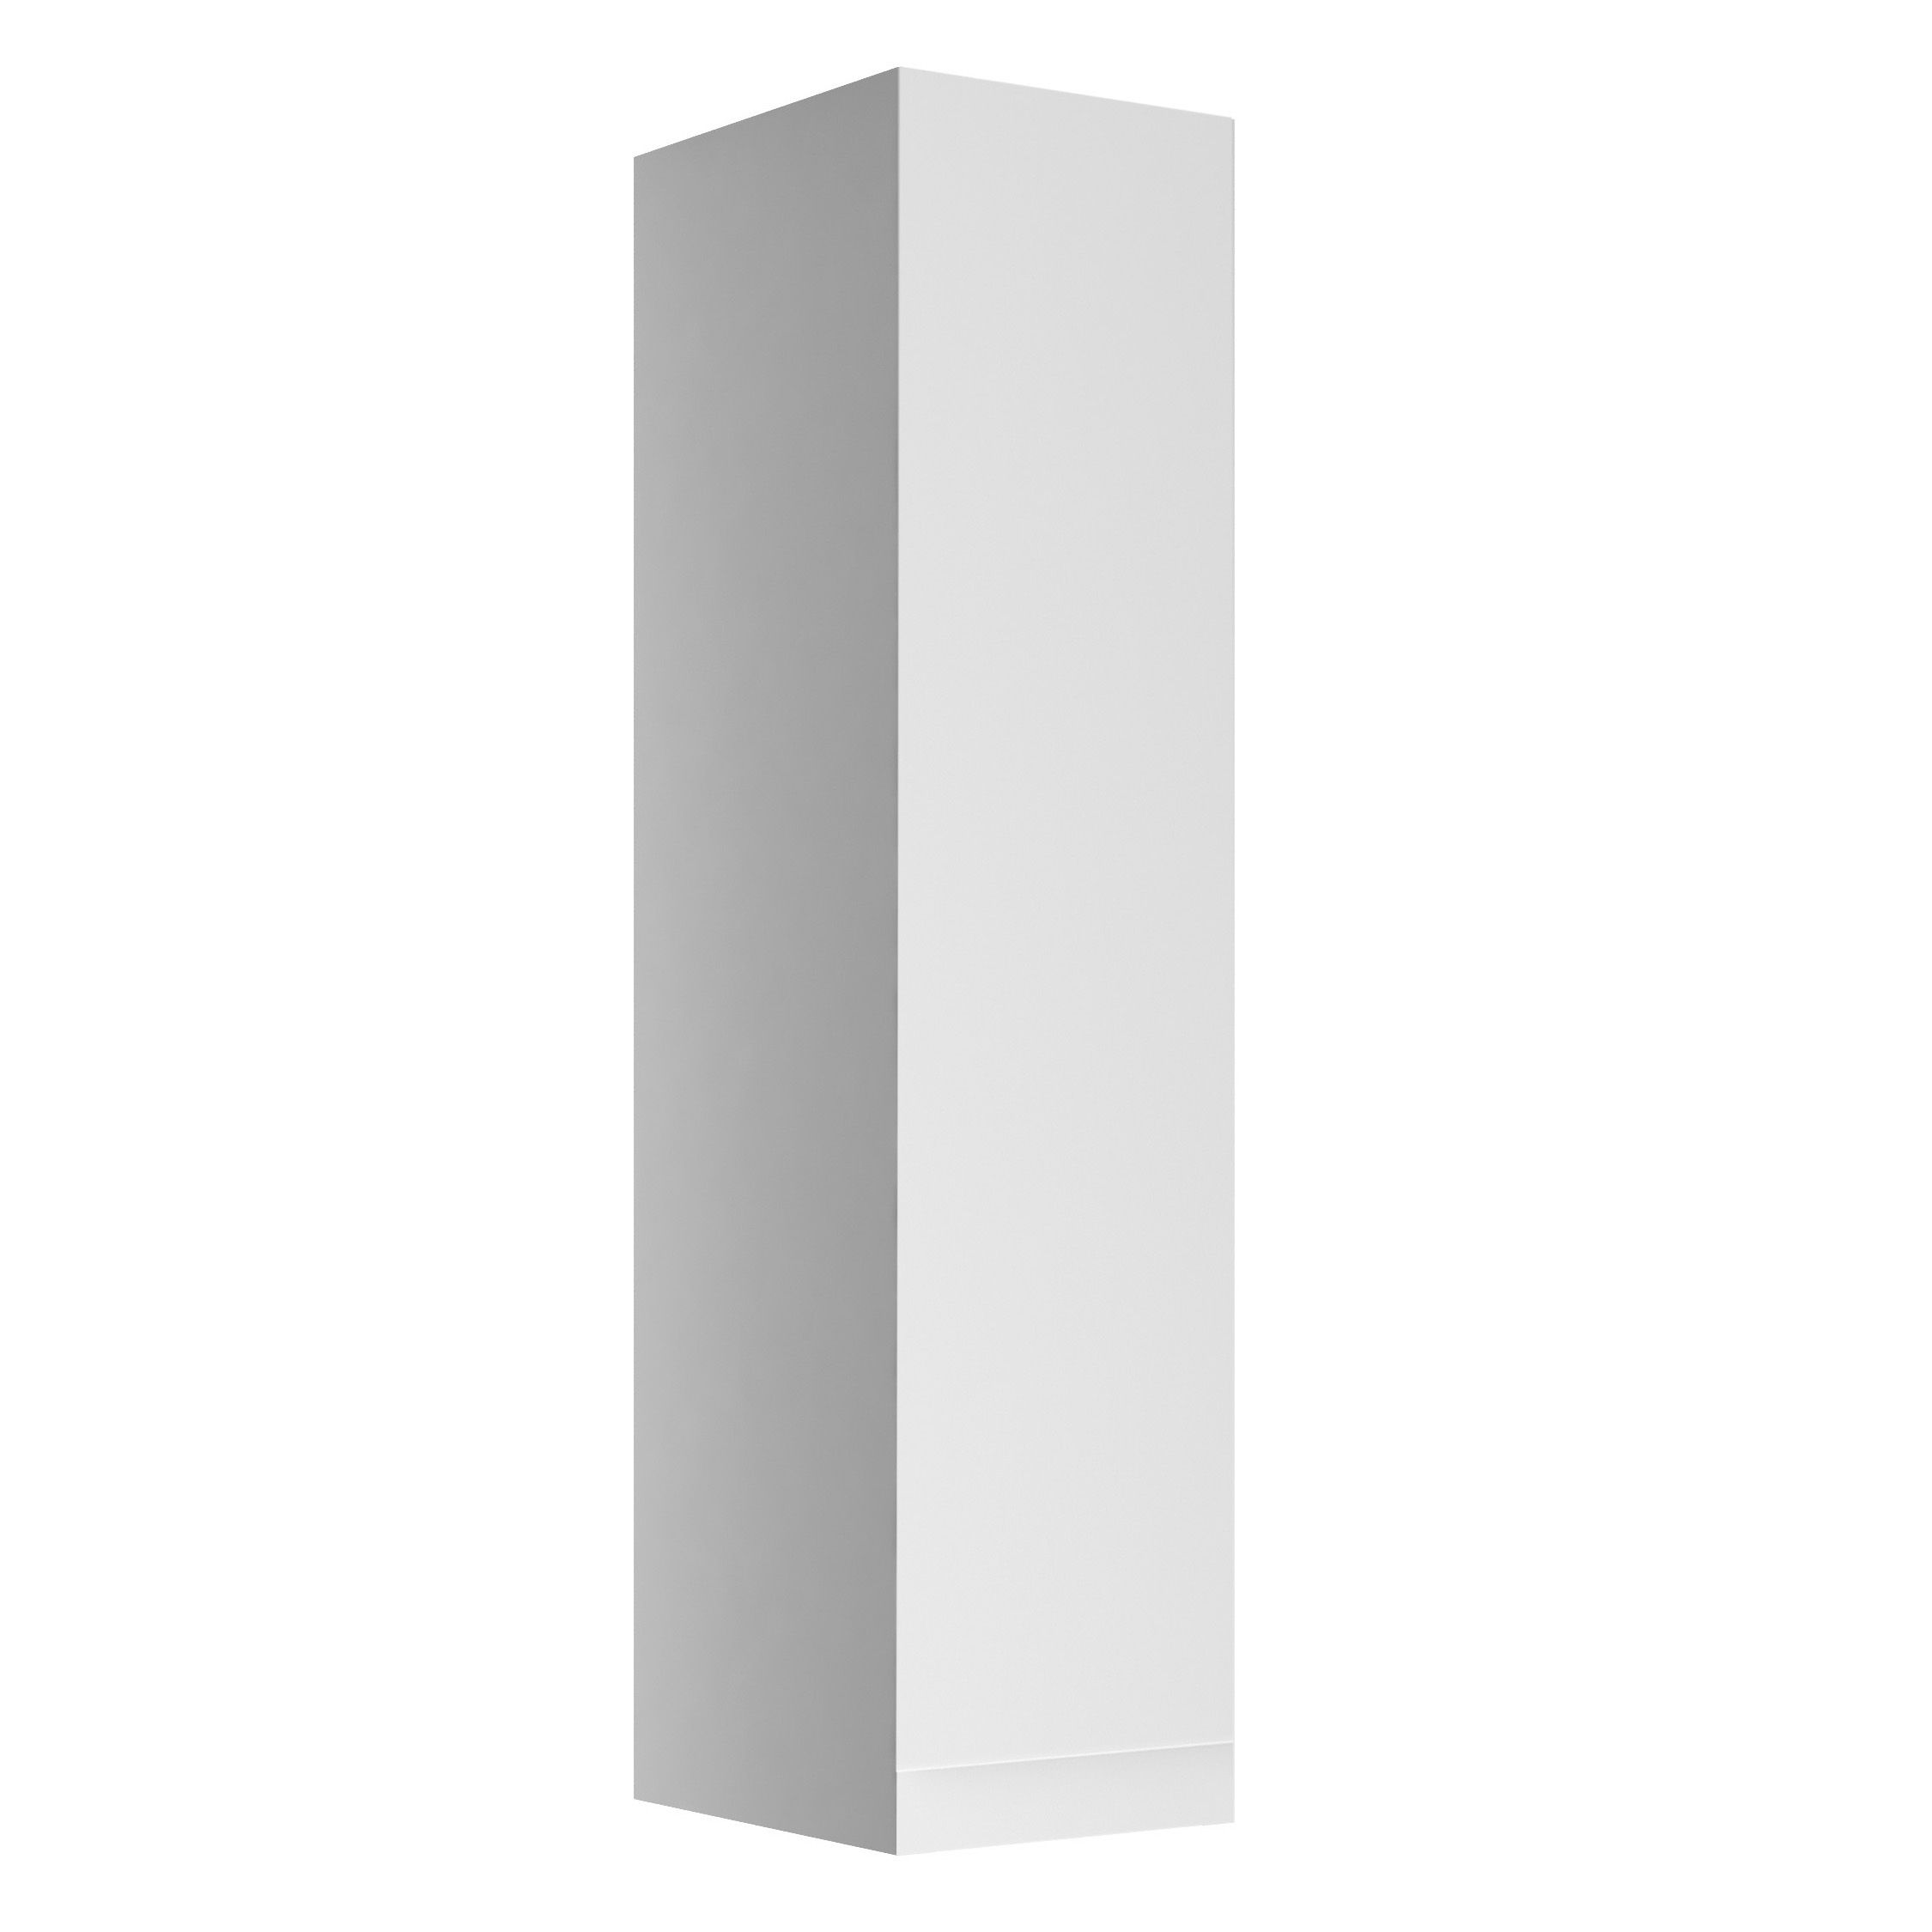 Cooke Lewis Marletti Gloss White Wall Cabinet Departments DIY At